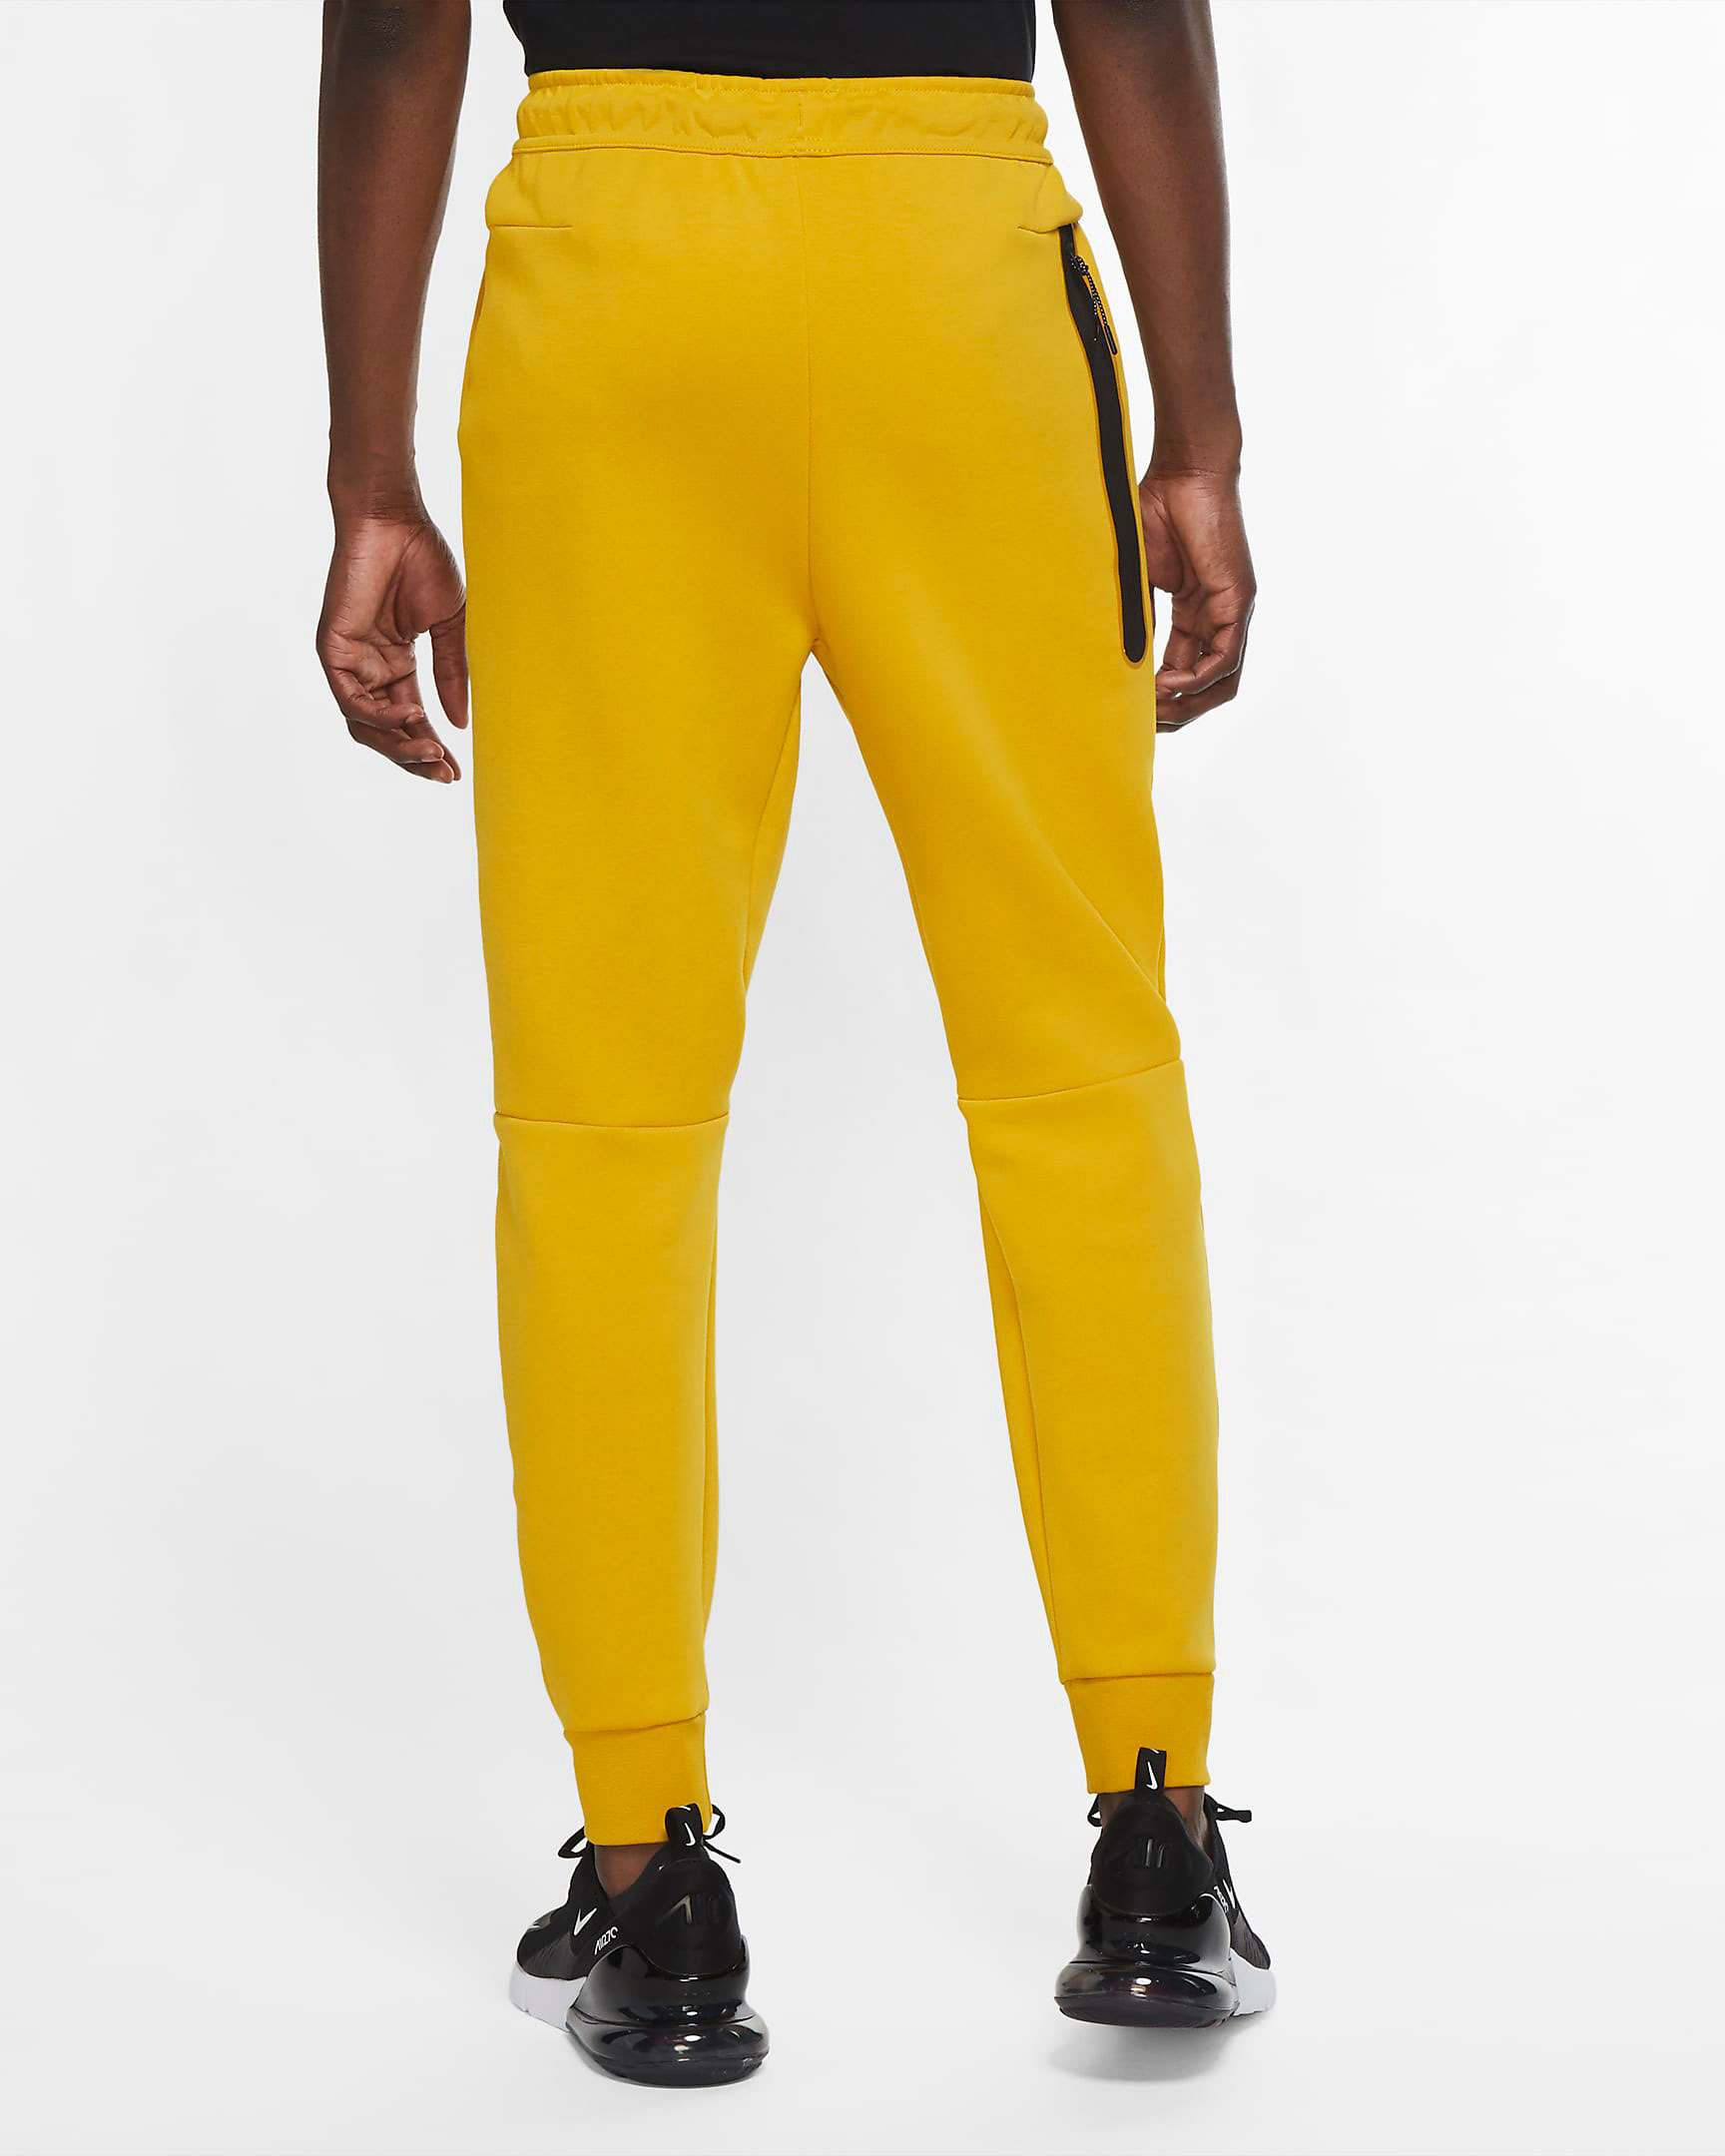 nike-tech-fleece-pants-yellow-sulfur-2